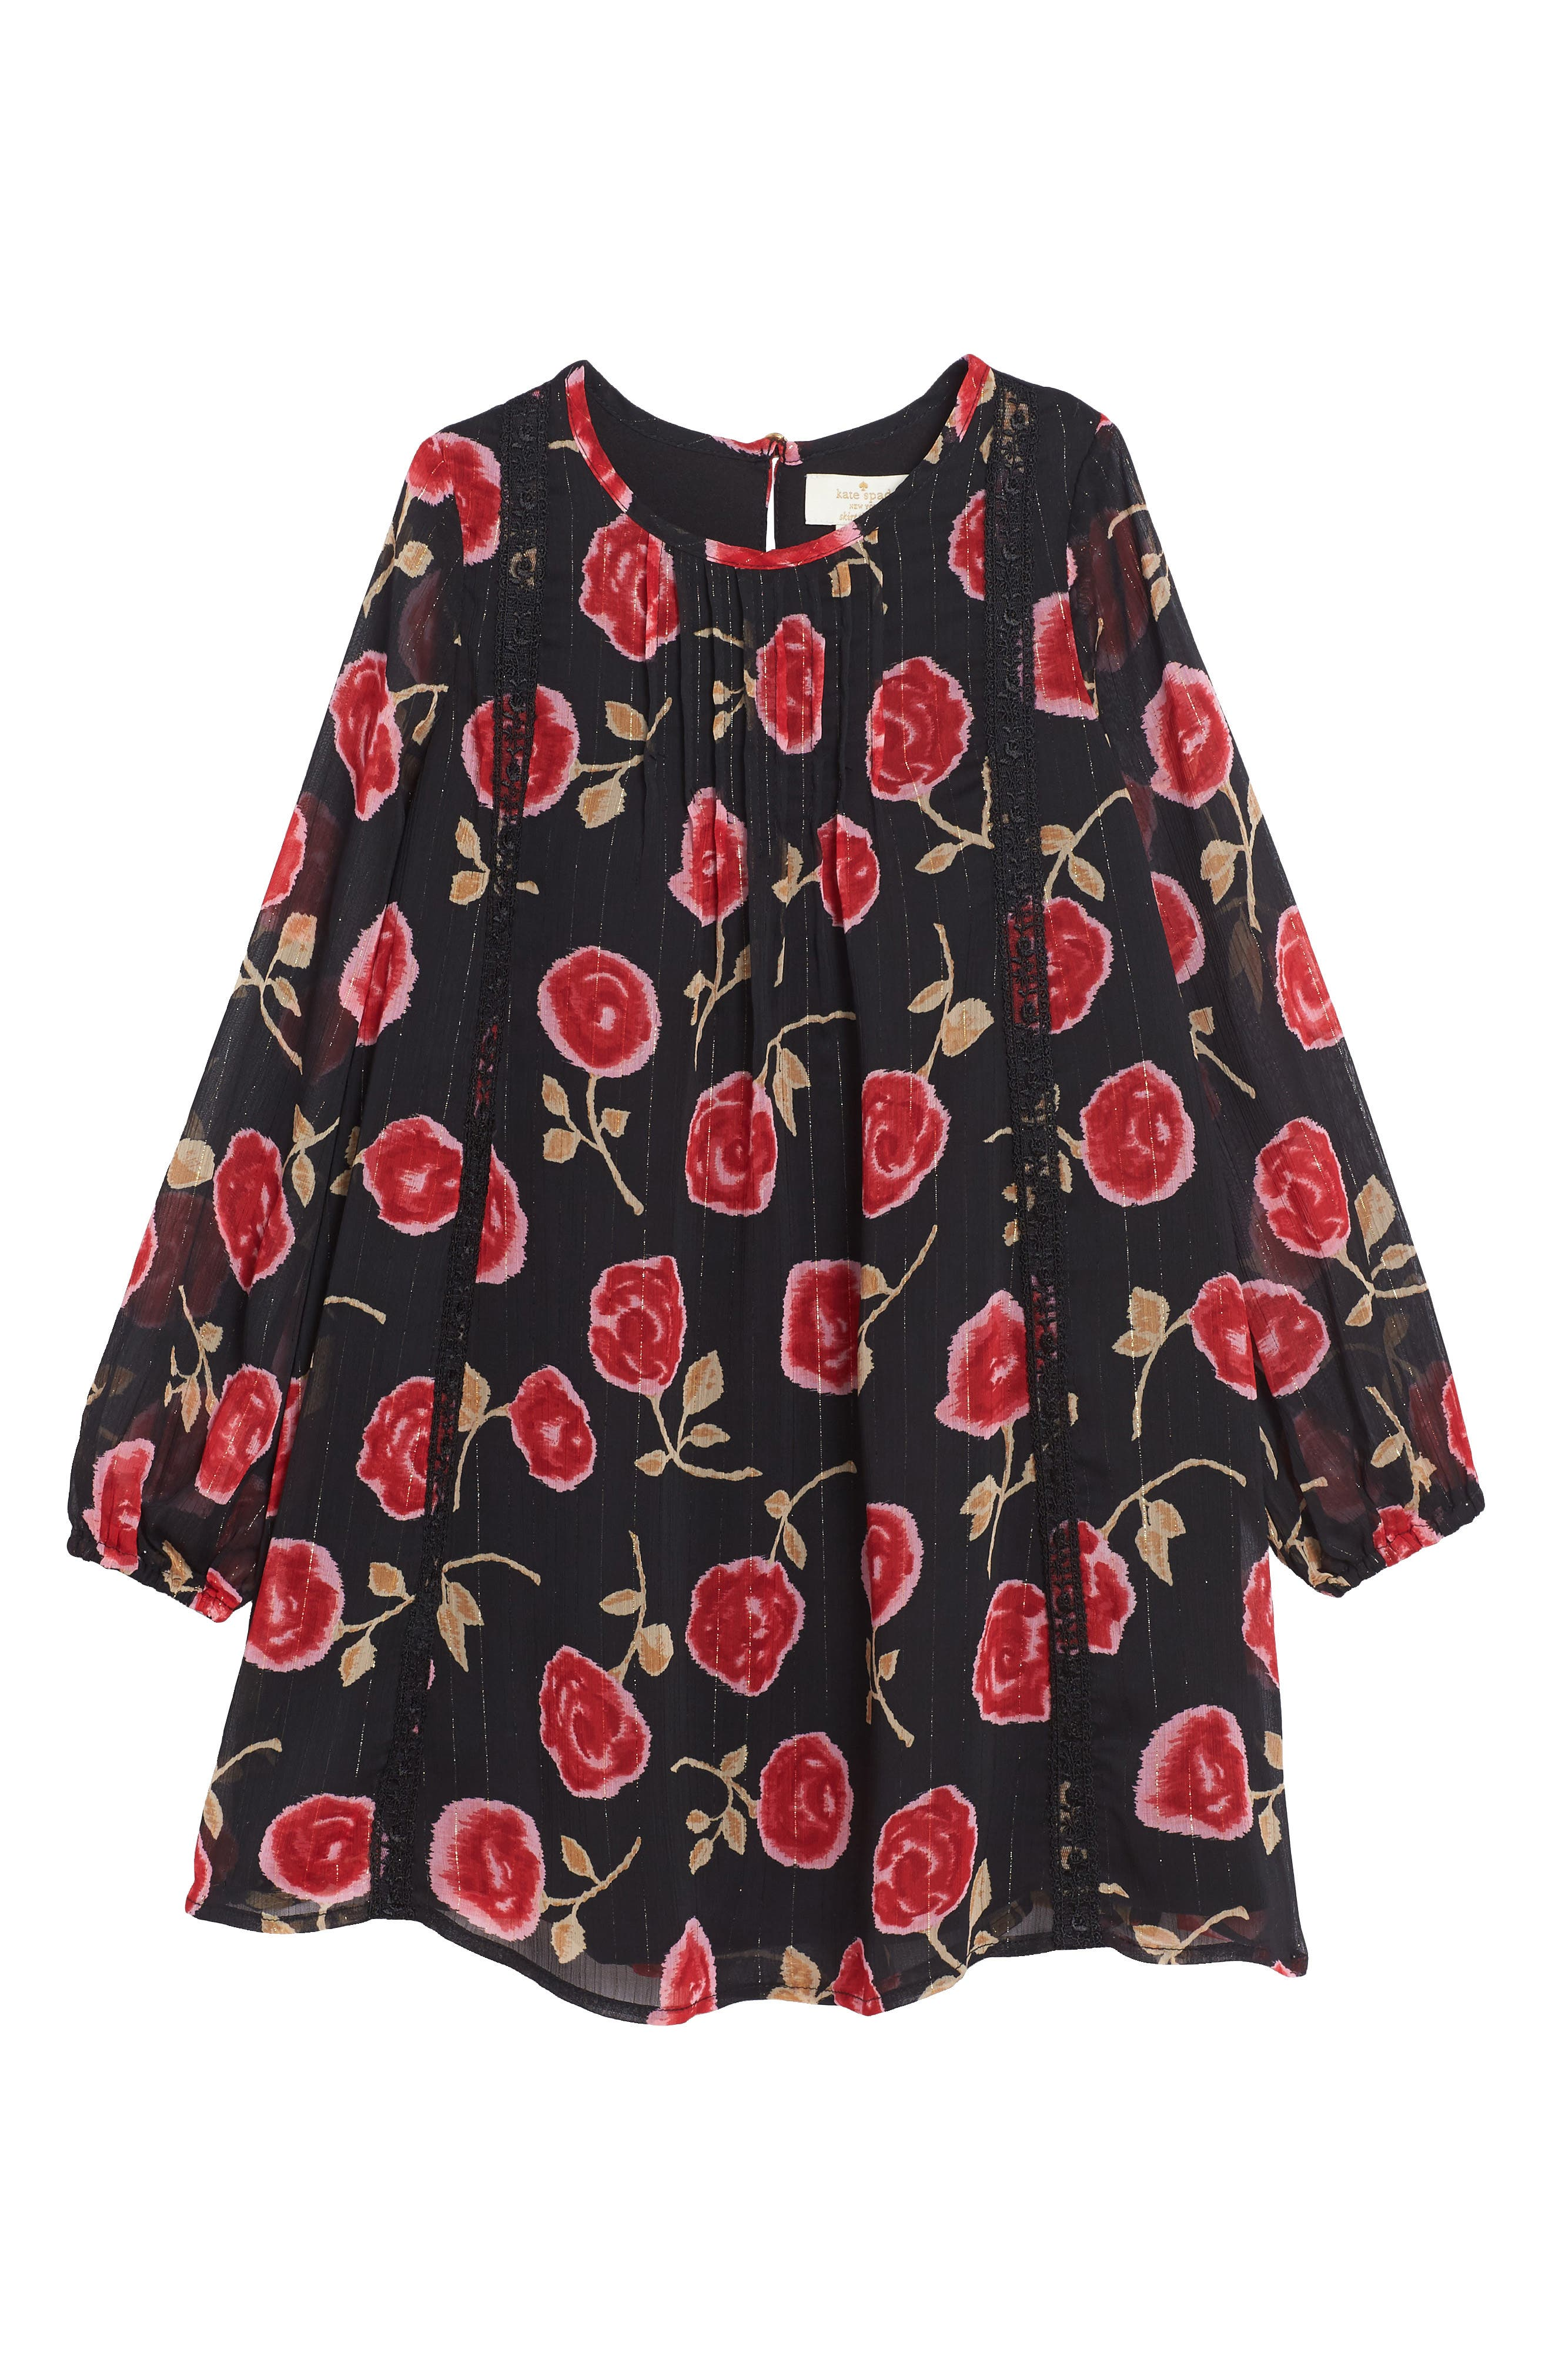 Main Image - kate spade new york rose print chiffon dress (Big Girls)